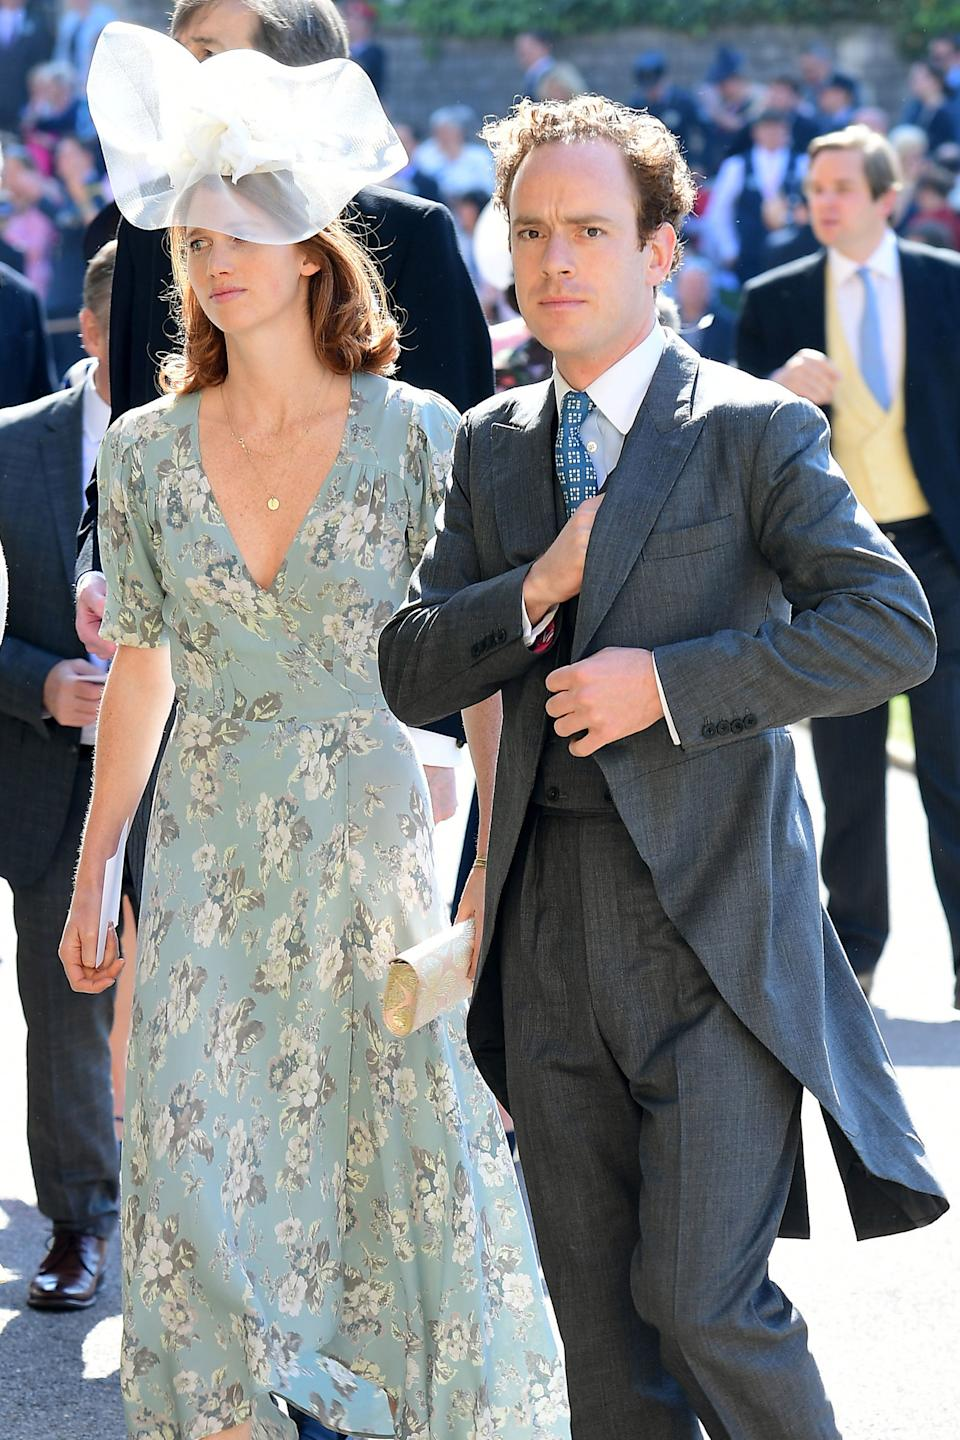 """The prince's confidant - regularly called """"Skippy"""" - attended the 2018 nuptials with his wife Lara (Getty Images)"""